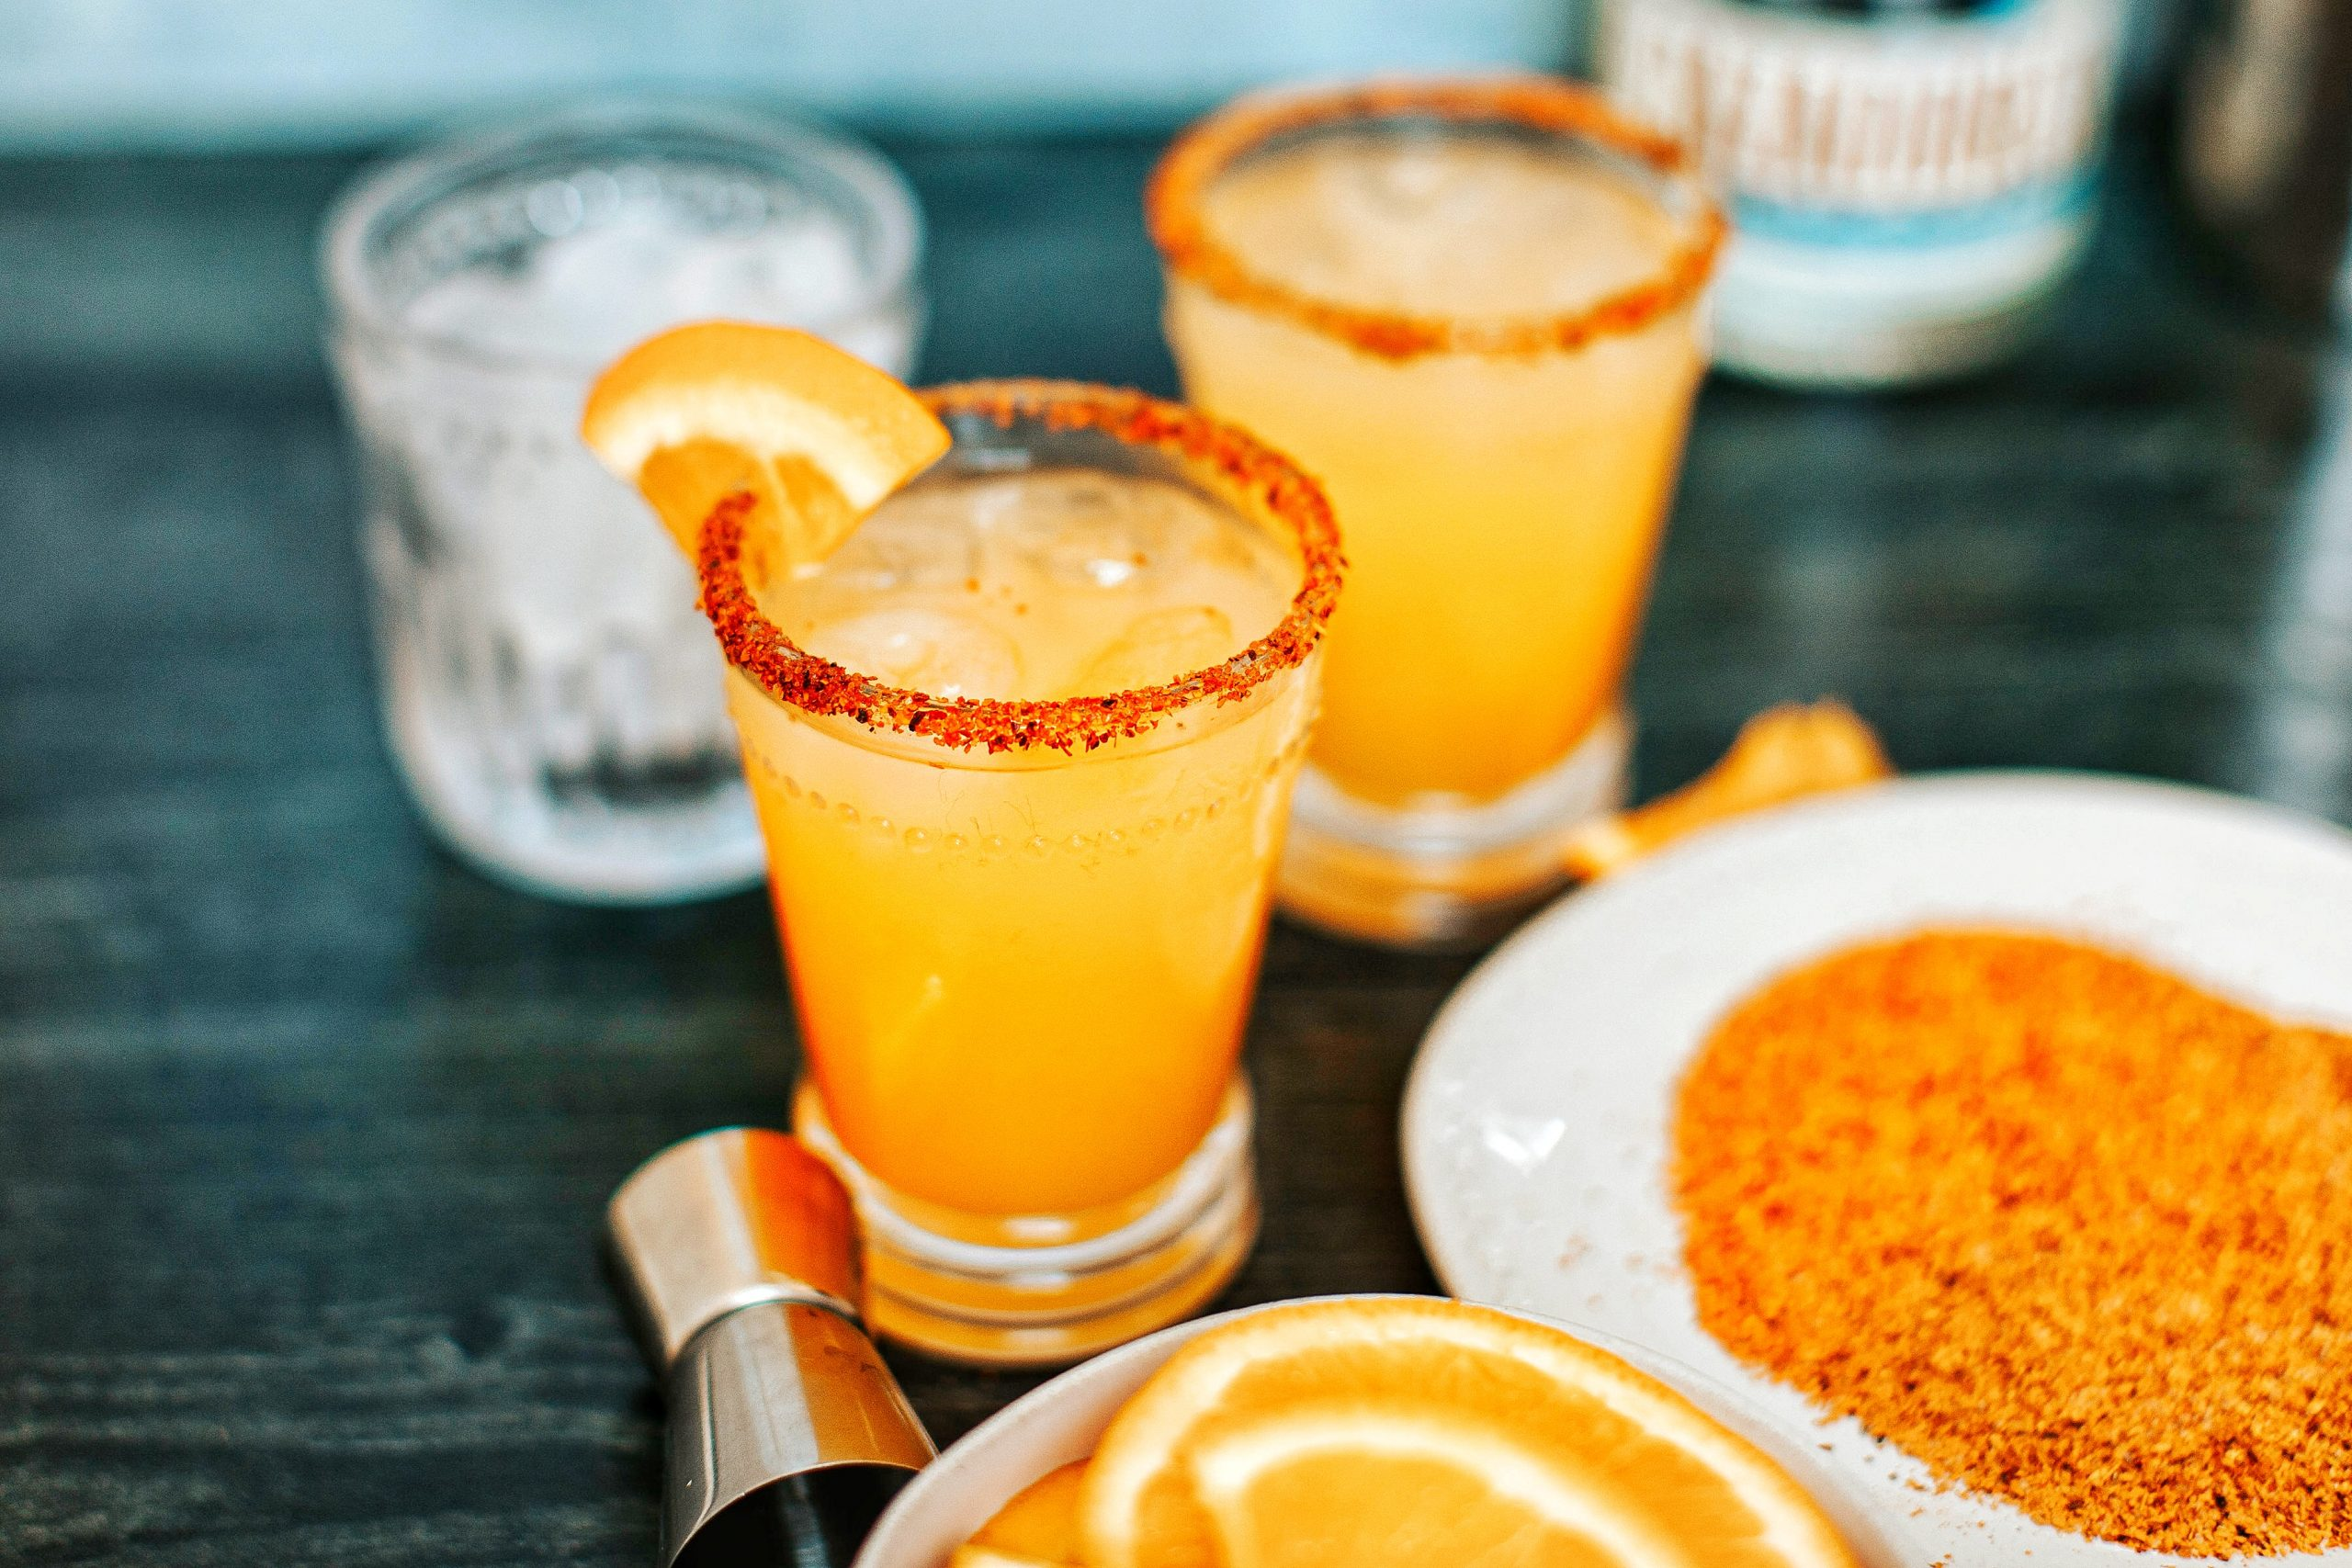 Orange mango margarita in glass with Tajin rim. Orange slices in bowl, Tajin on plate.